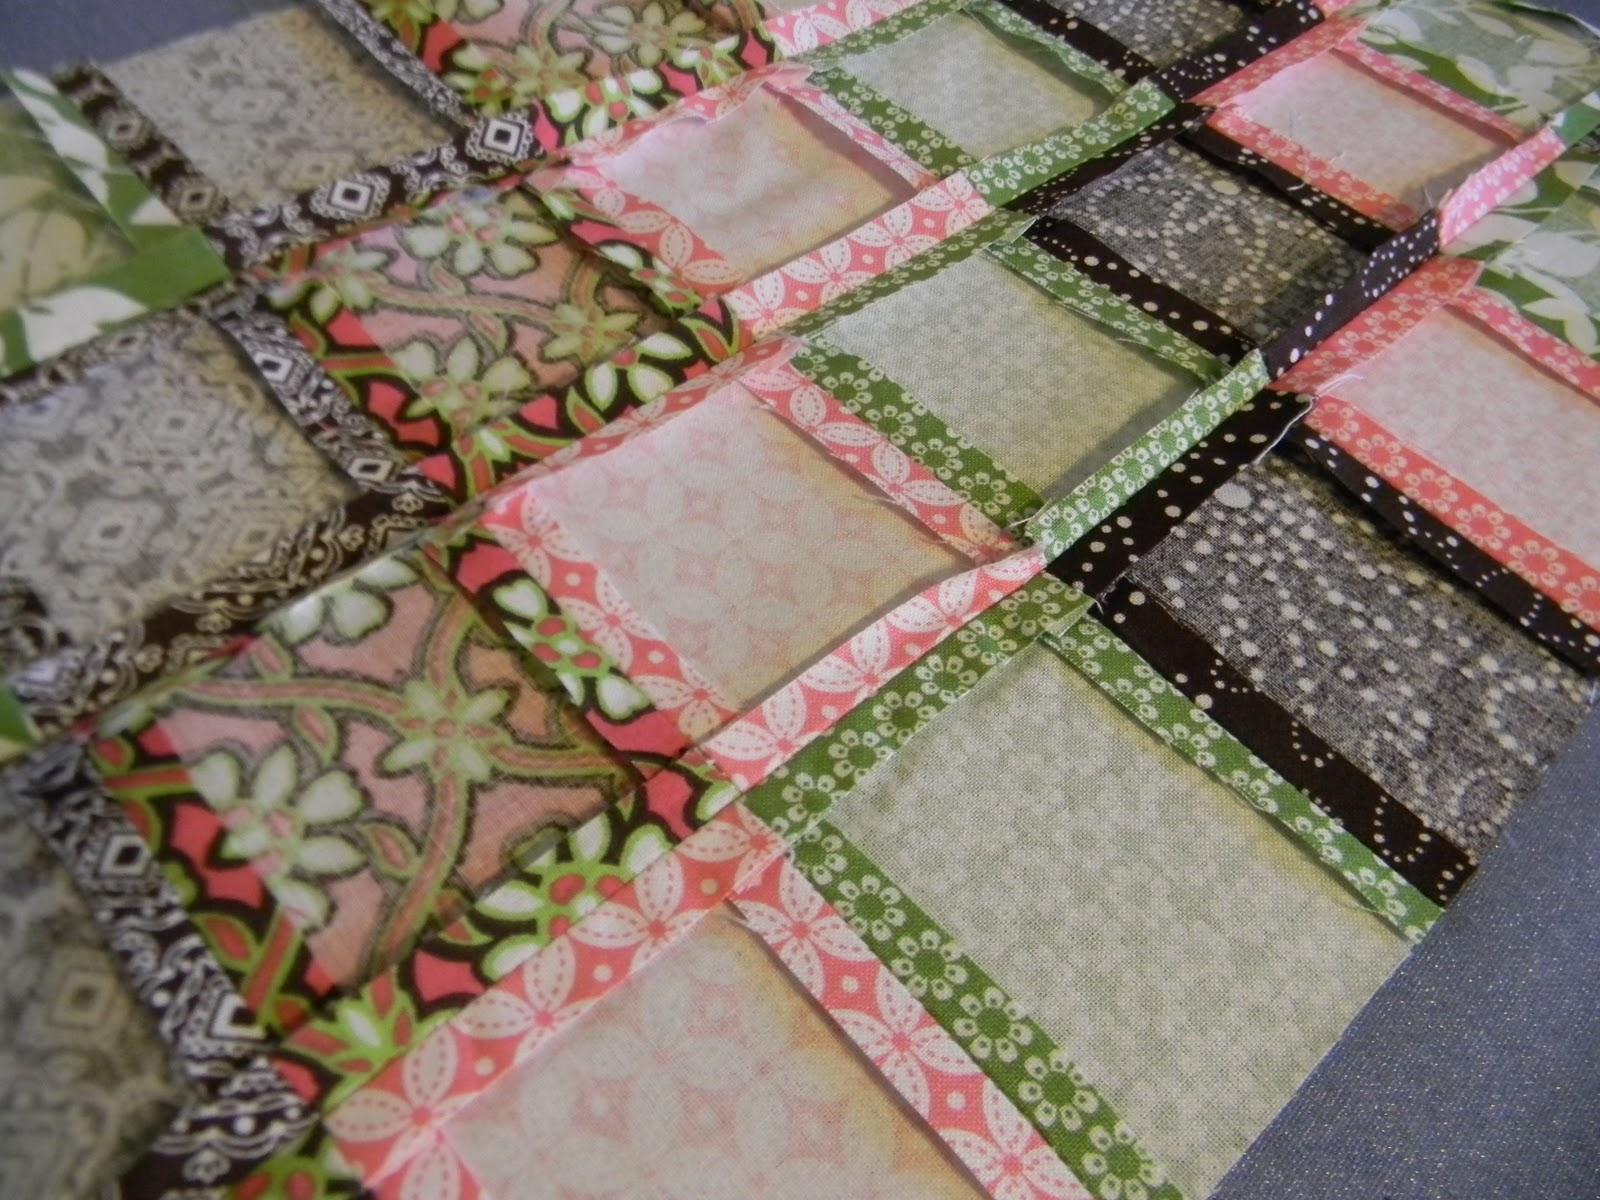 From Dahlias to Doxies: DIY Doll Beds and Tiny Quilts